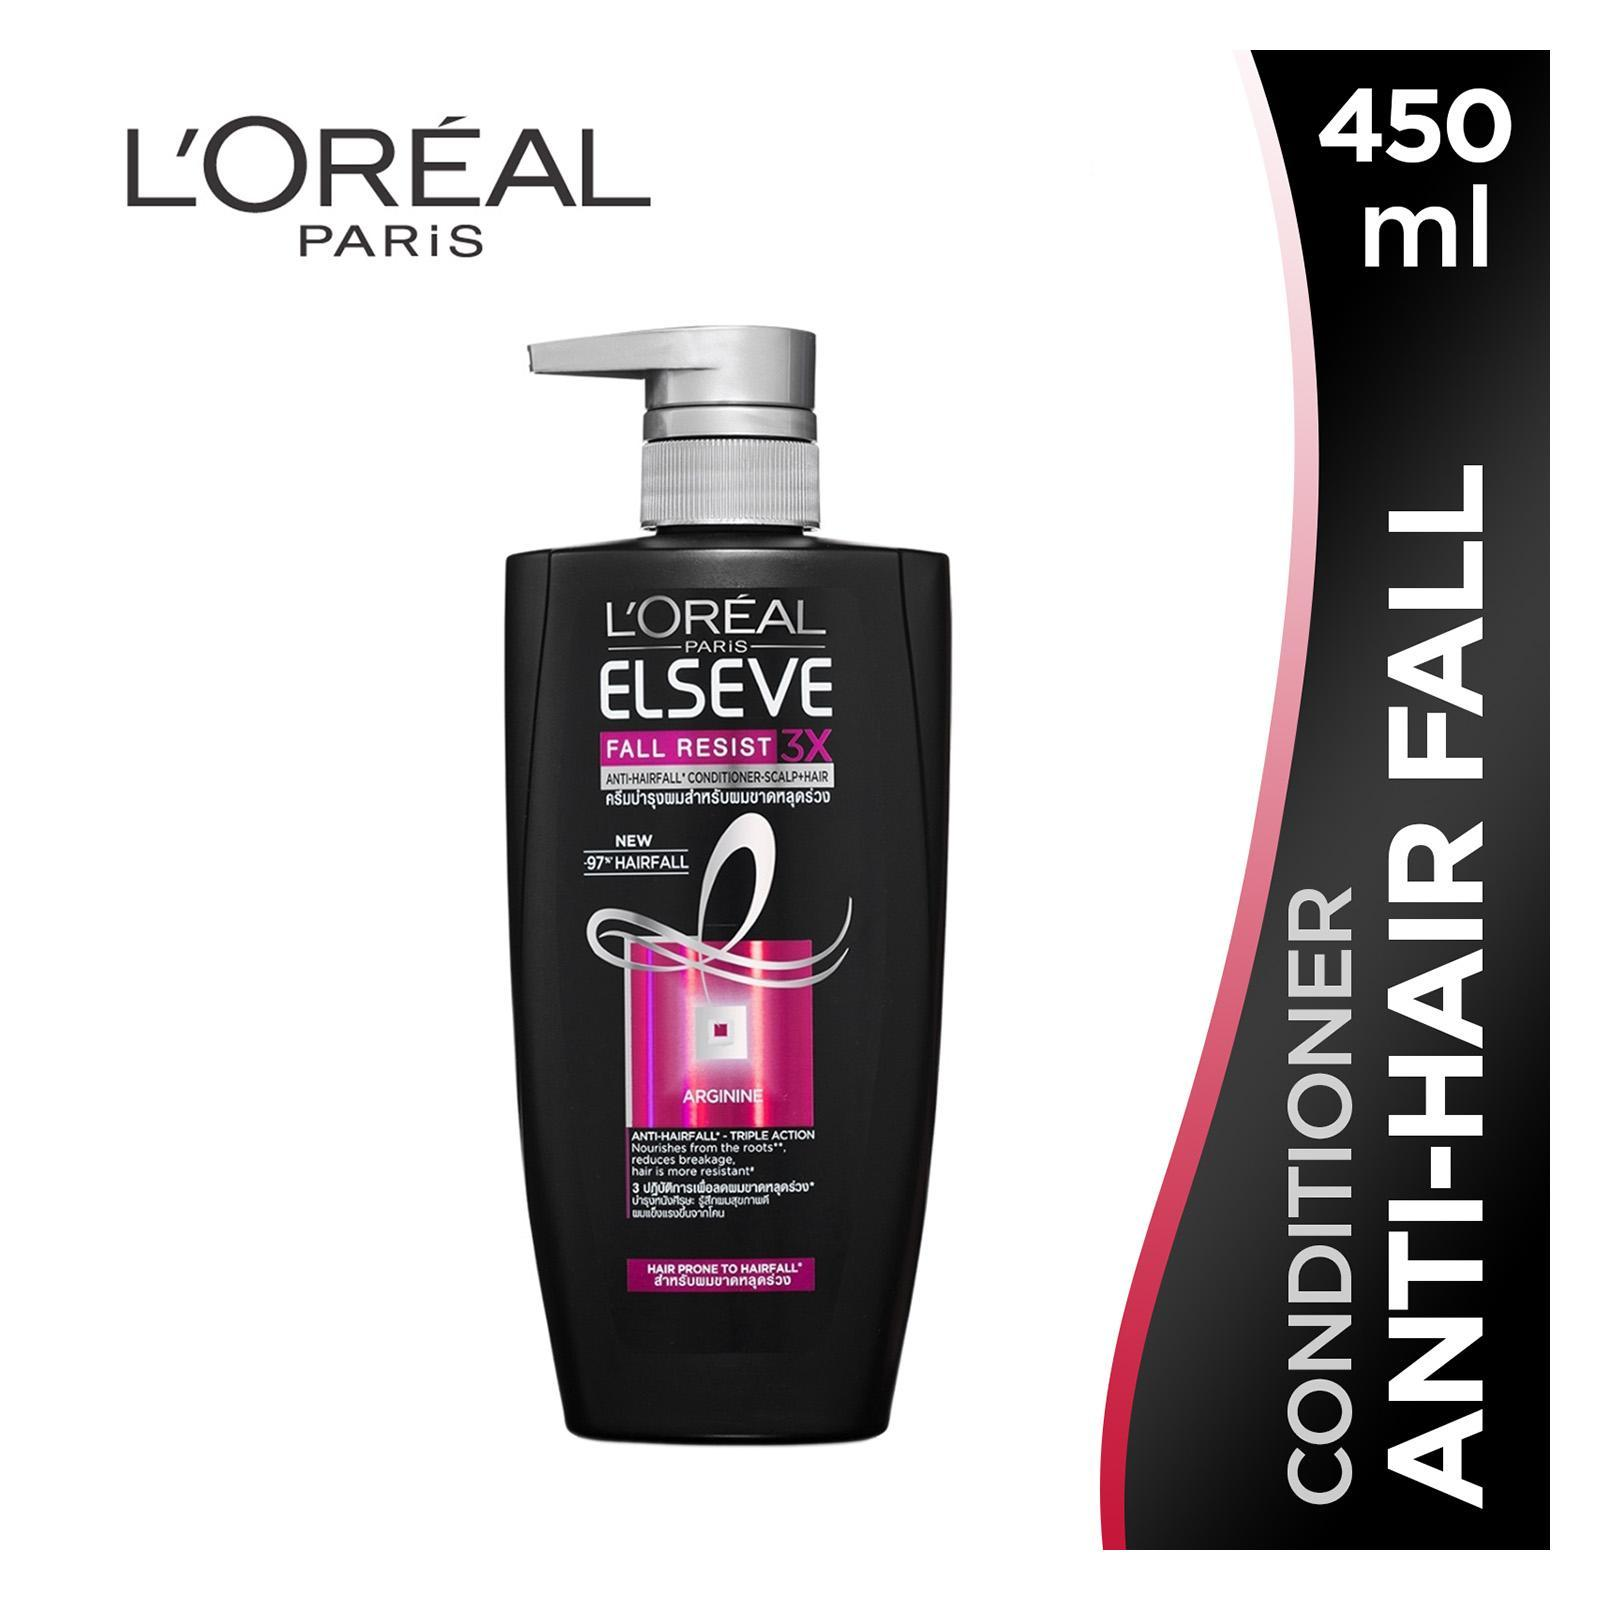 LOREAL PARIS ELSEVE loréal paris elseve fall repair 3x anti hair fall shampoo 650ml